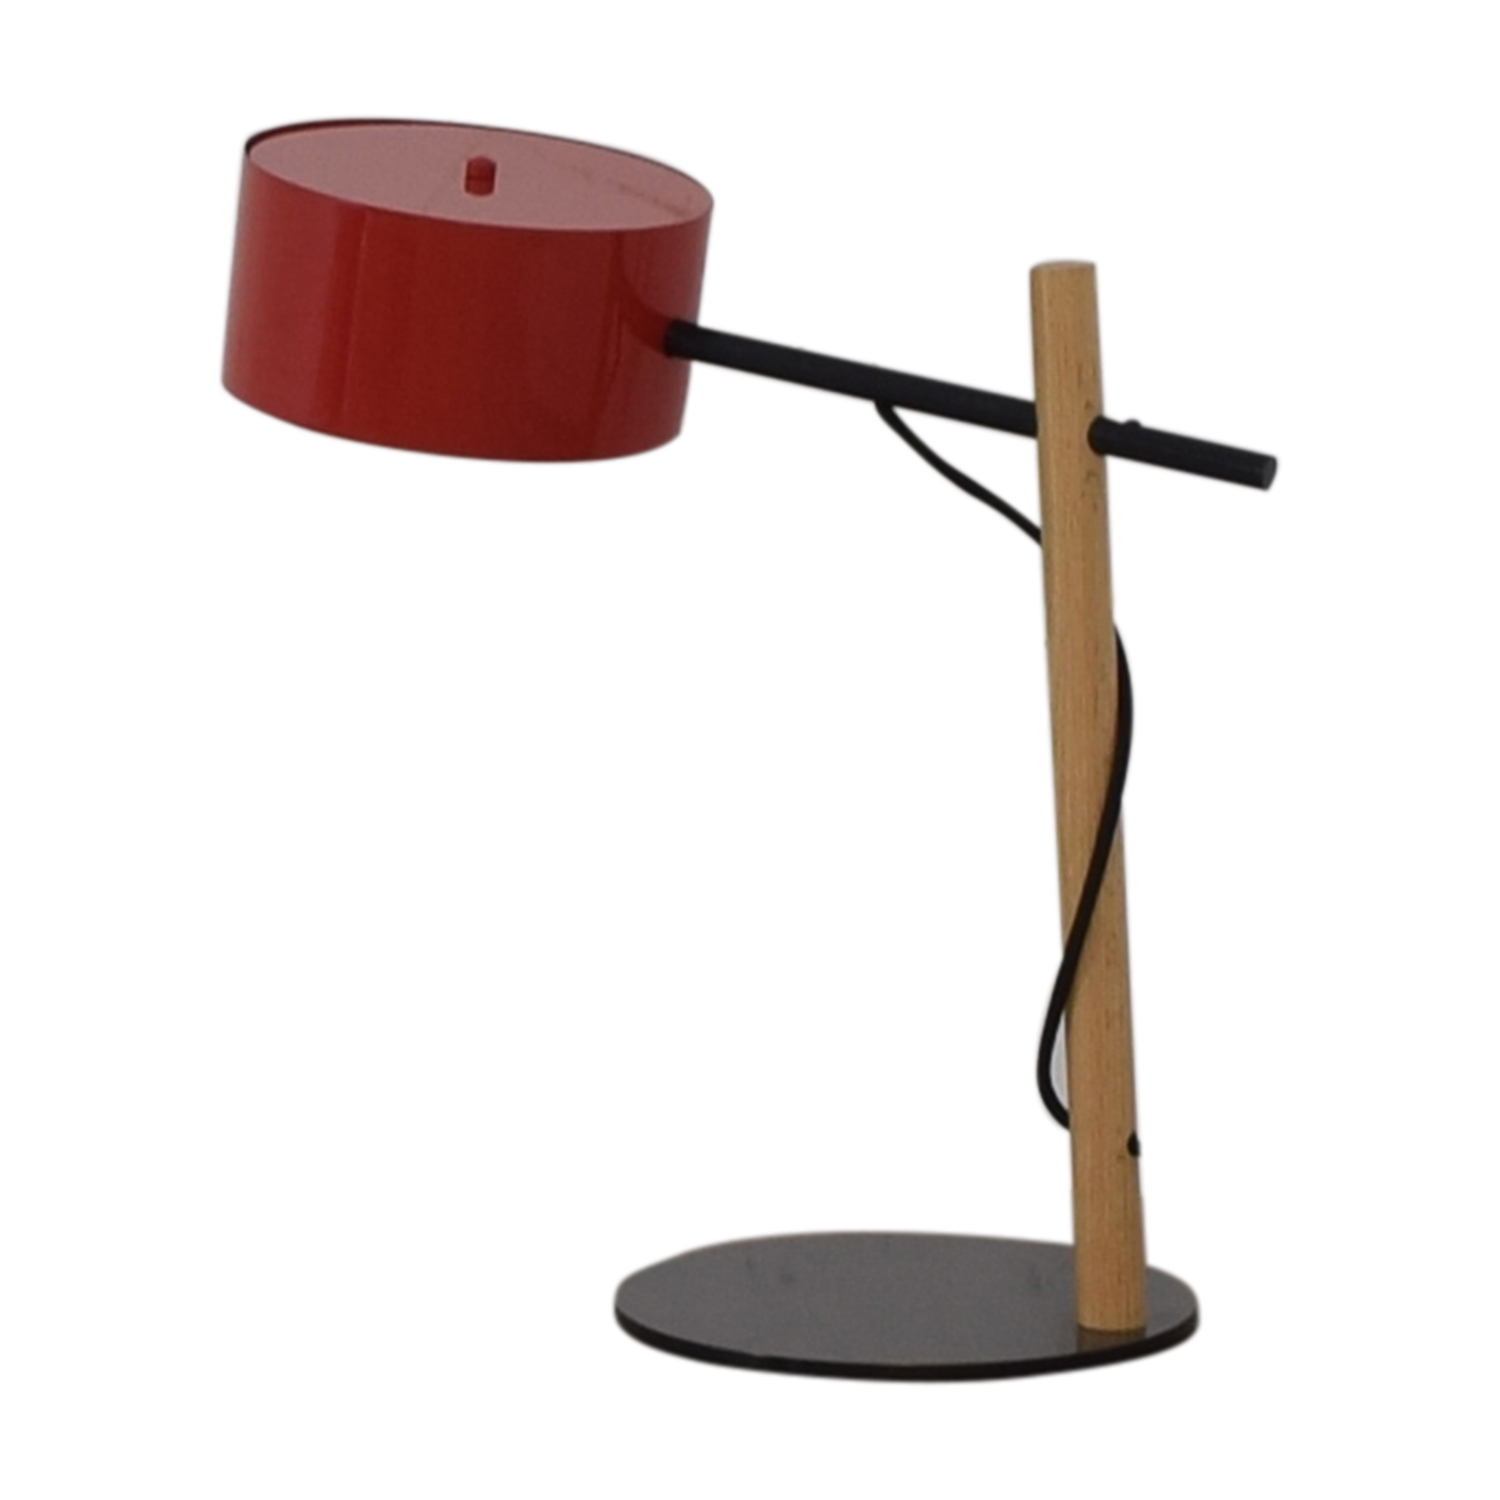 Roll & HIll Roll & Hill Excel Desk Lamp